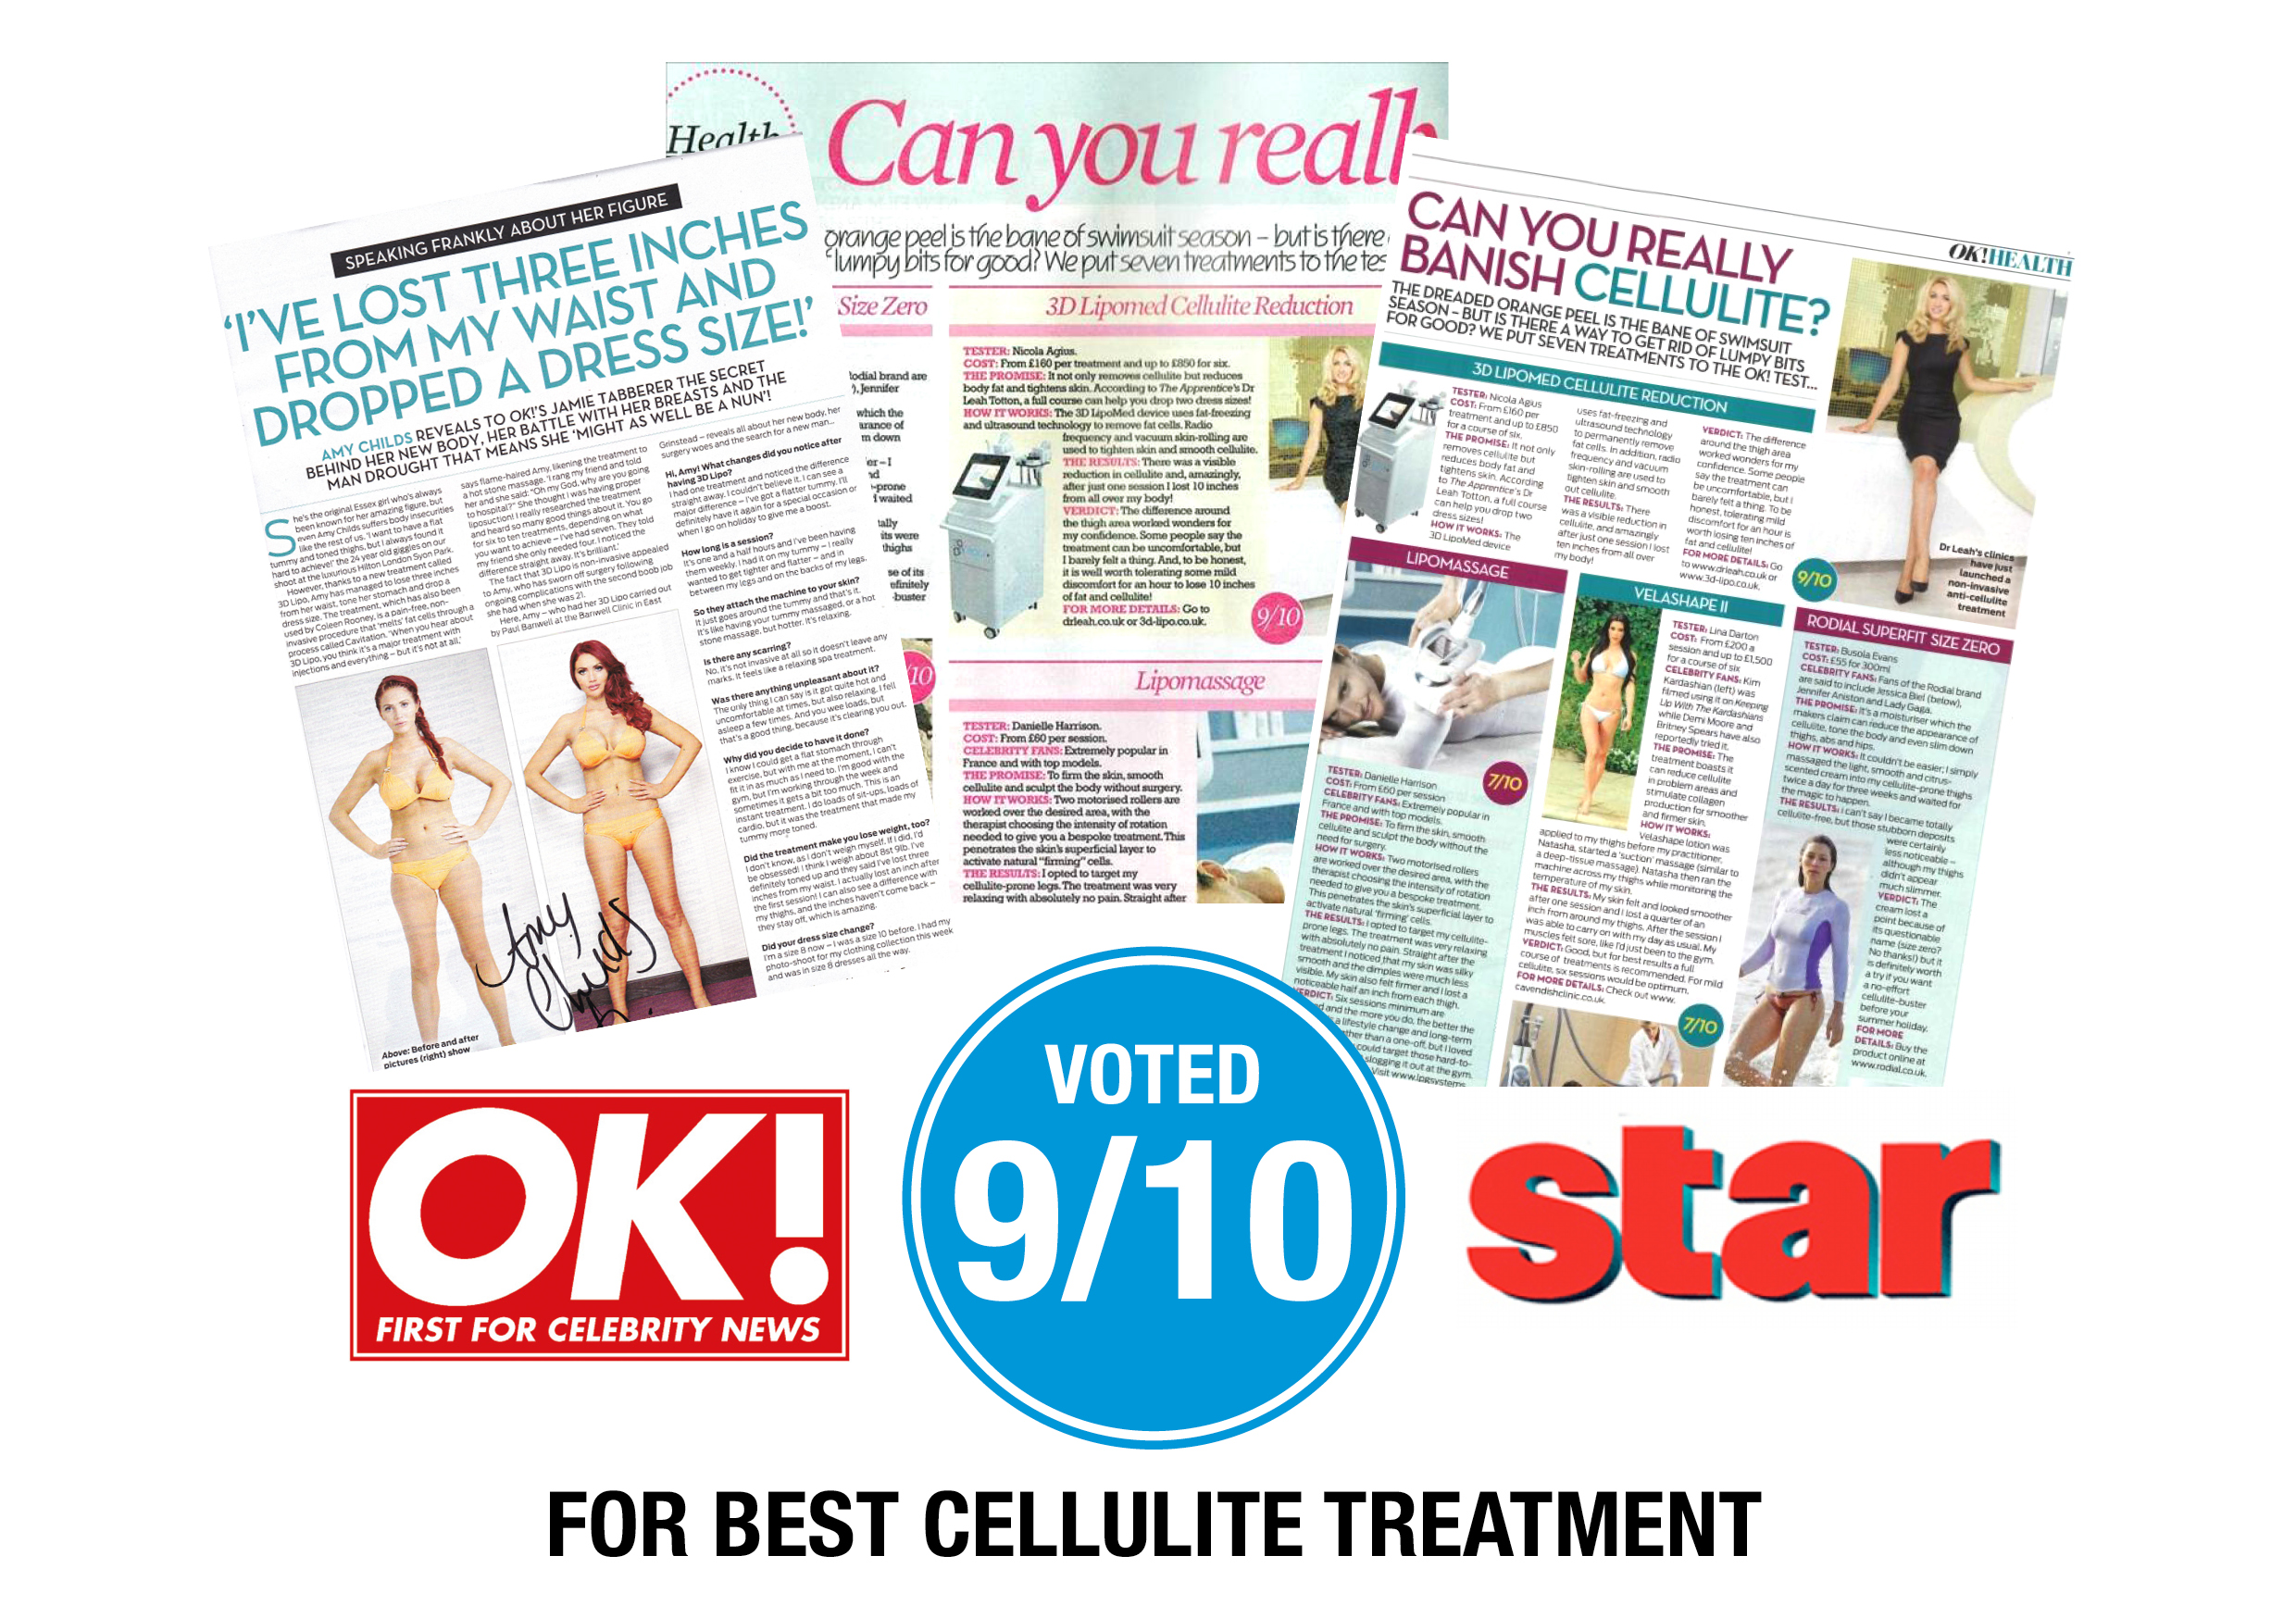 3D Lipo Cellulite treatment in the news